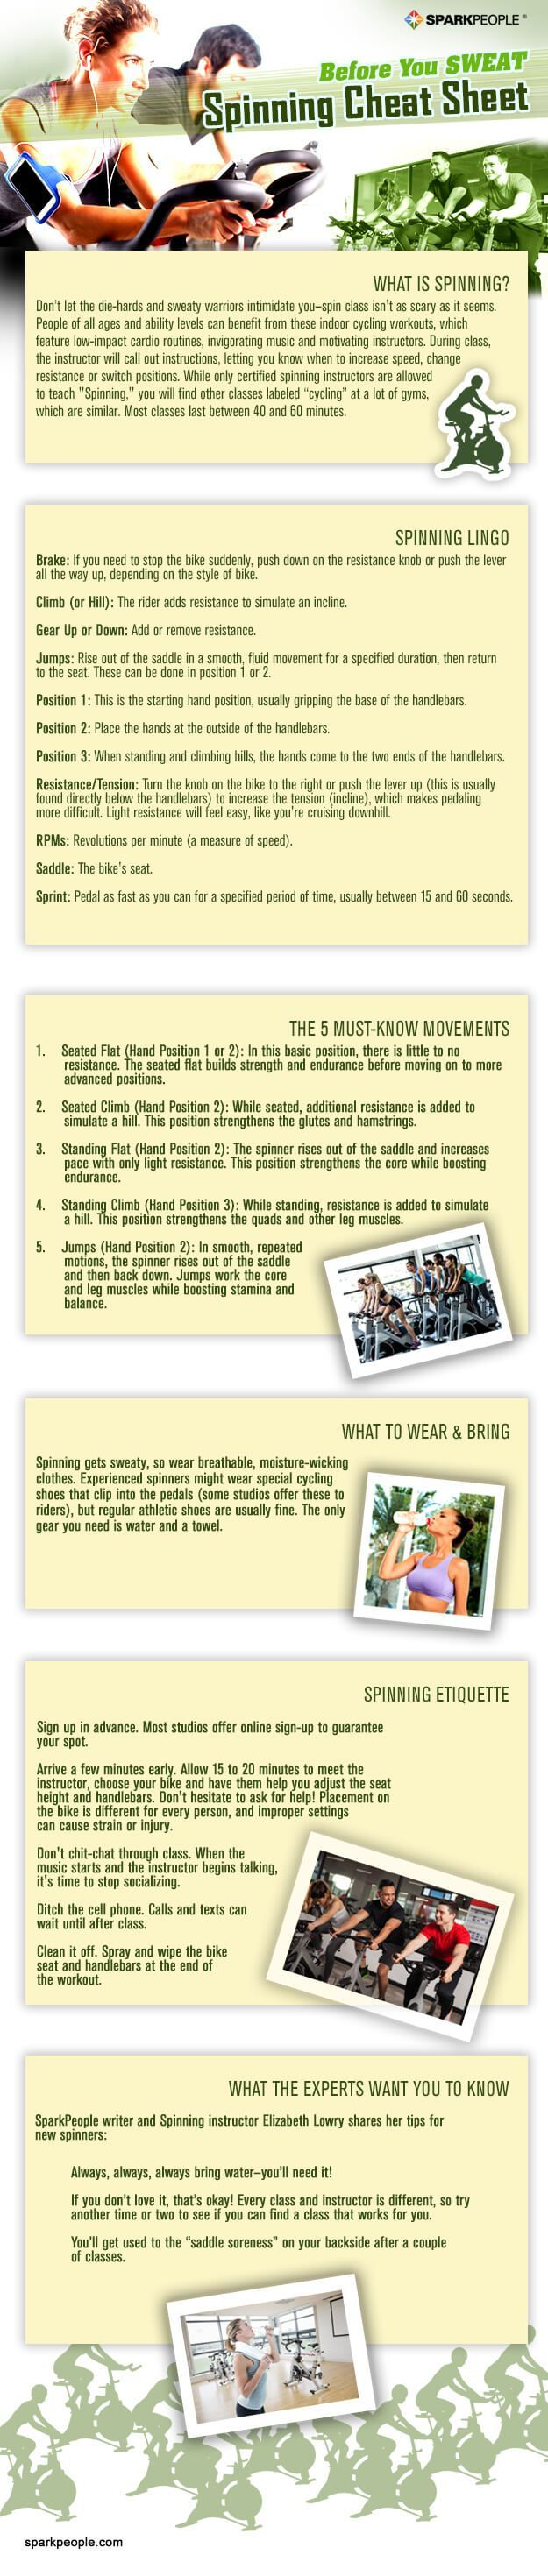 Thinking about signing up for your first spinning class? Check out this handy guide to get you ready for your first ride.